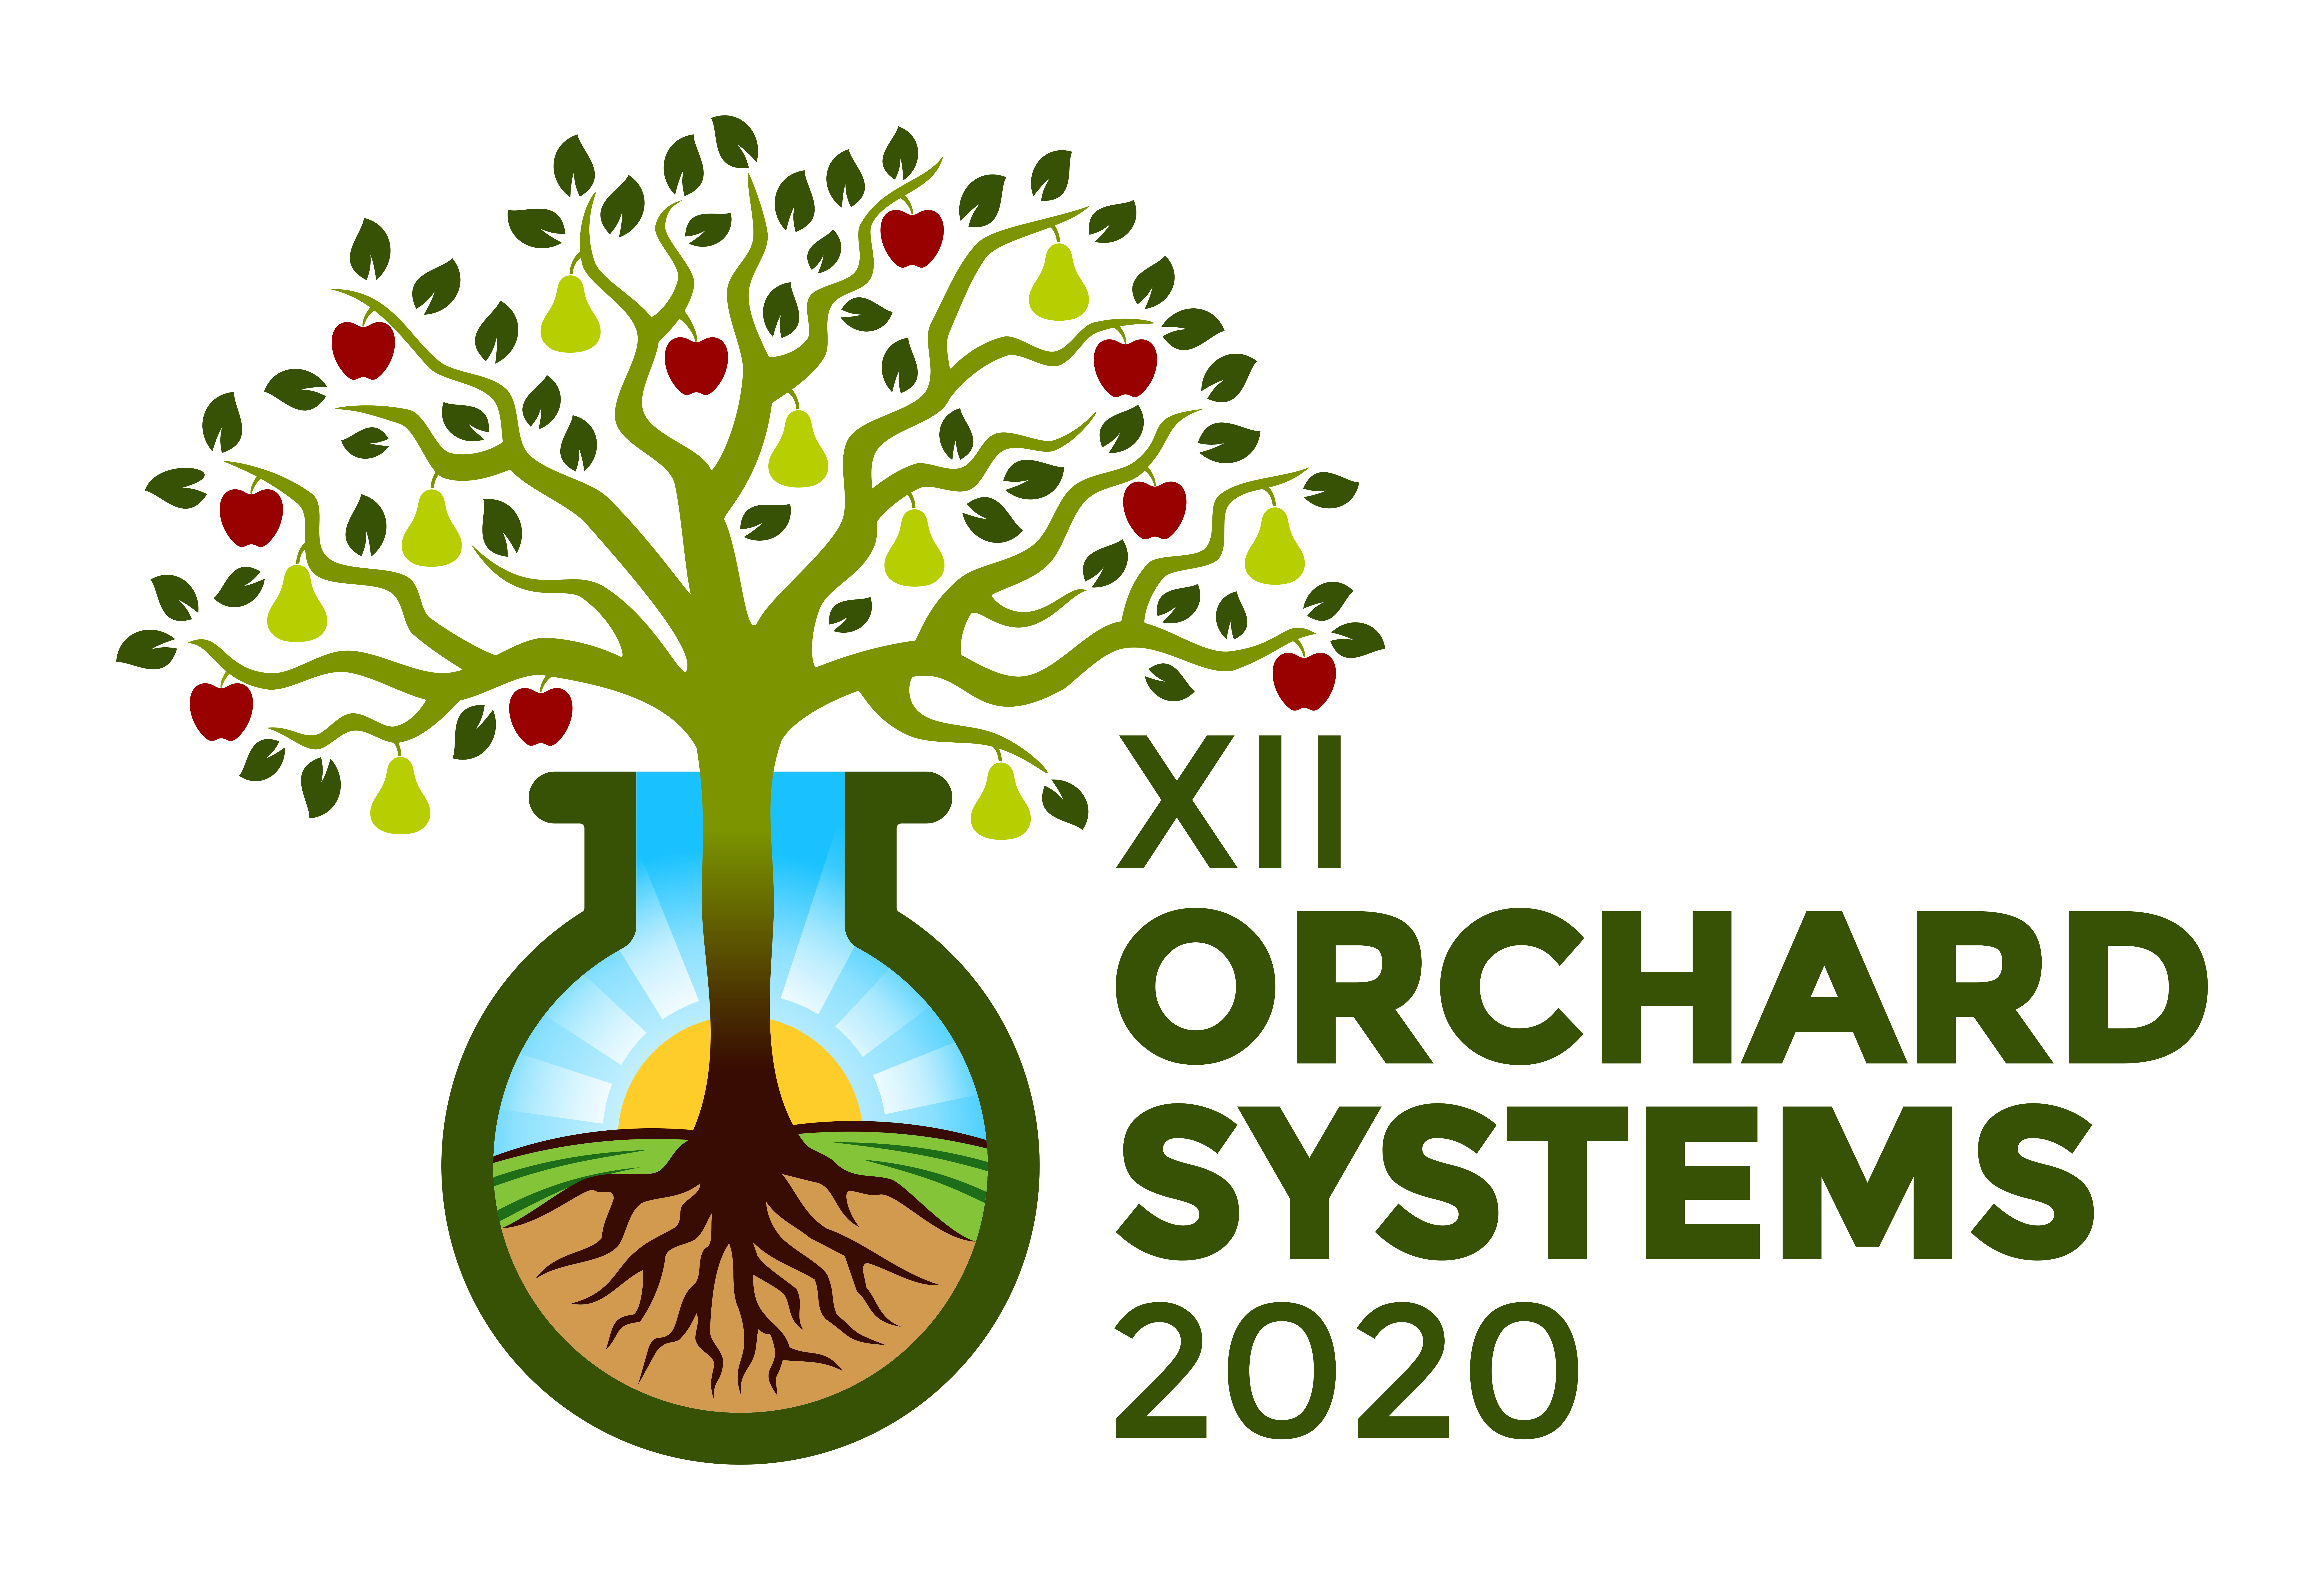 official logo of XII Orchard Systems 2020